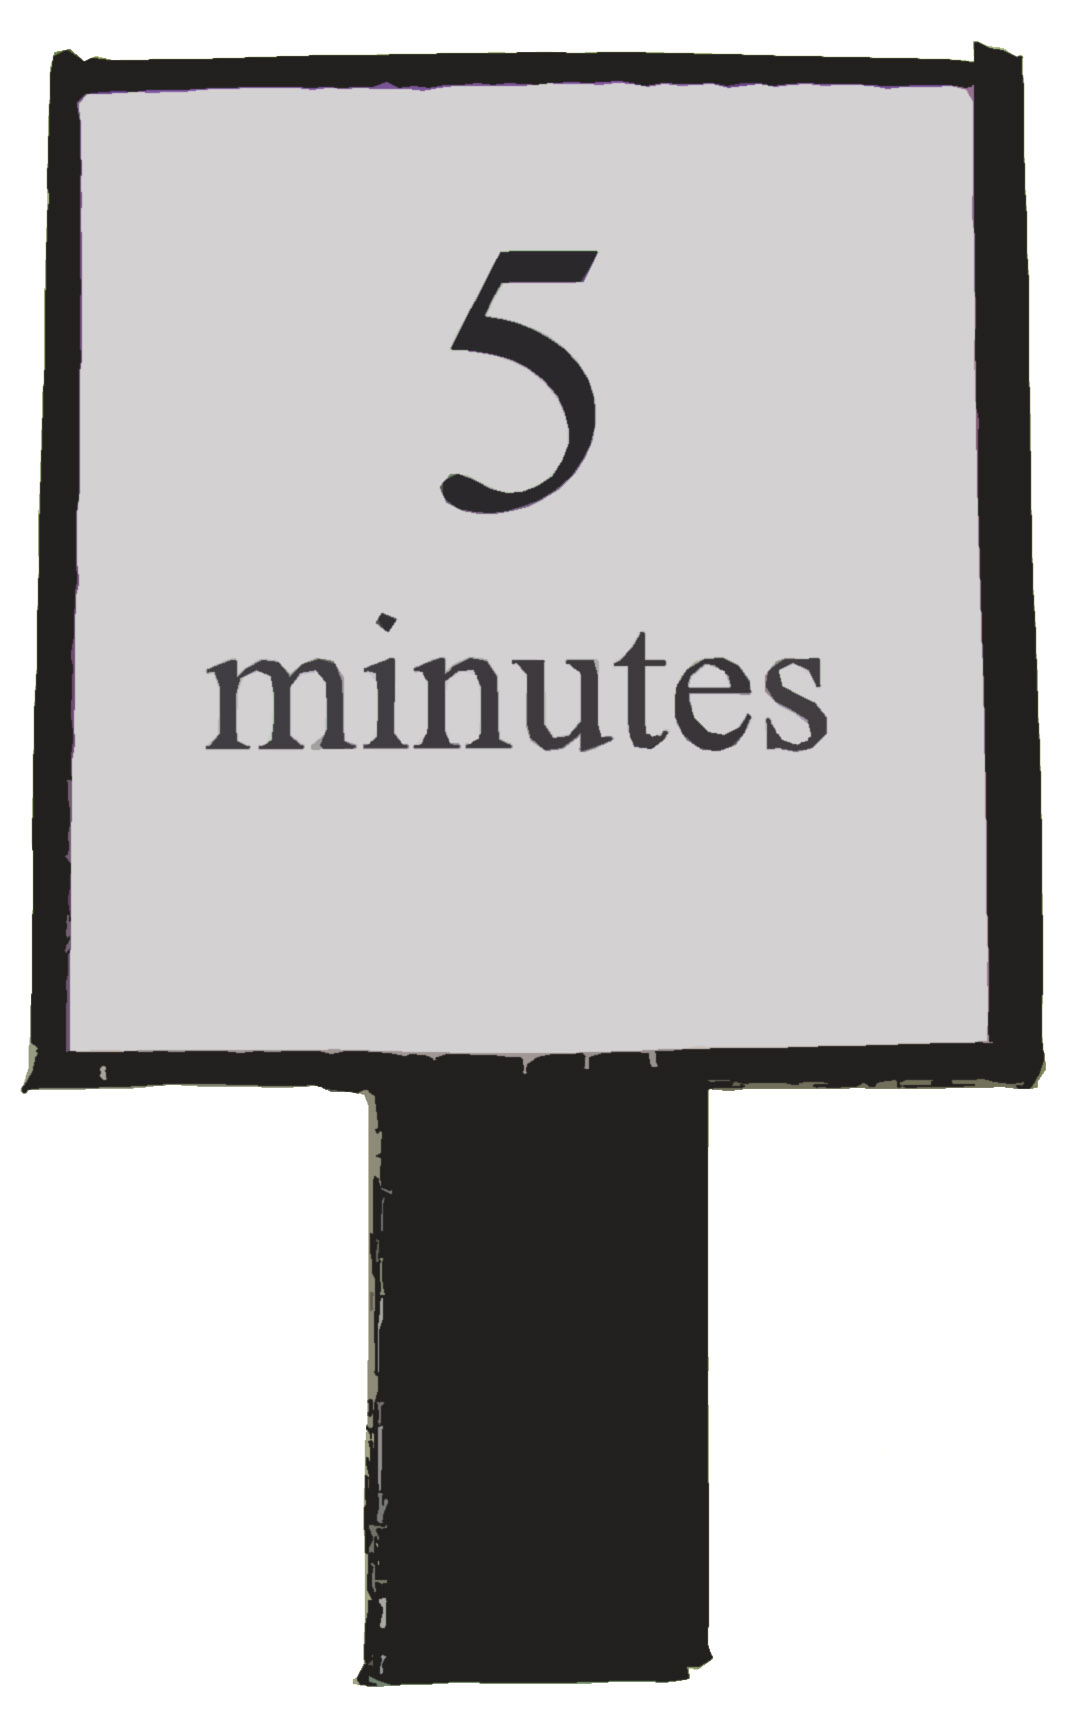 The First 5 Minutes How To Turn Good Intentions Into Finished Work